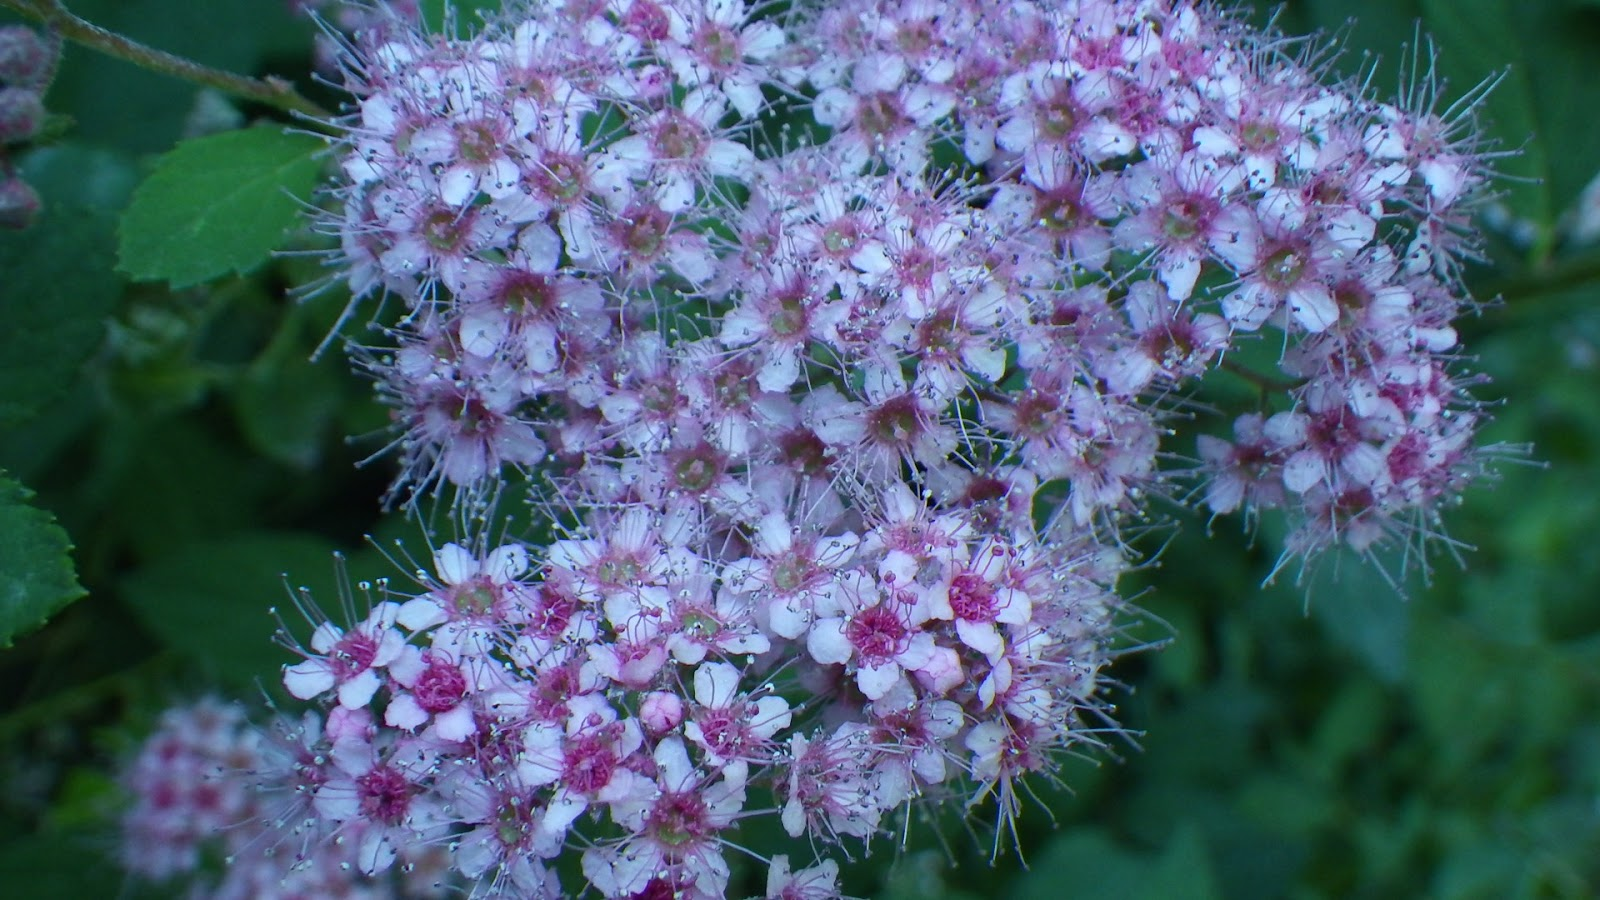 Buddy S Blog Spirea A Couple Different Types Of Roses